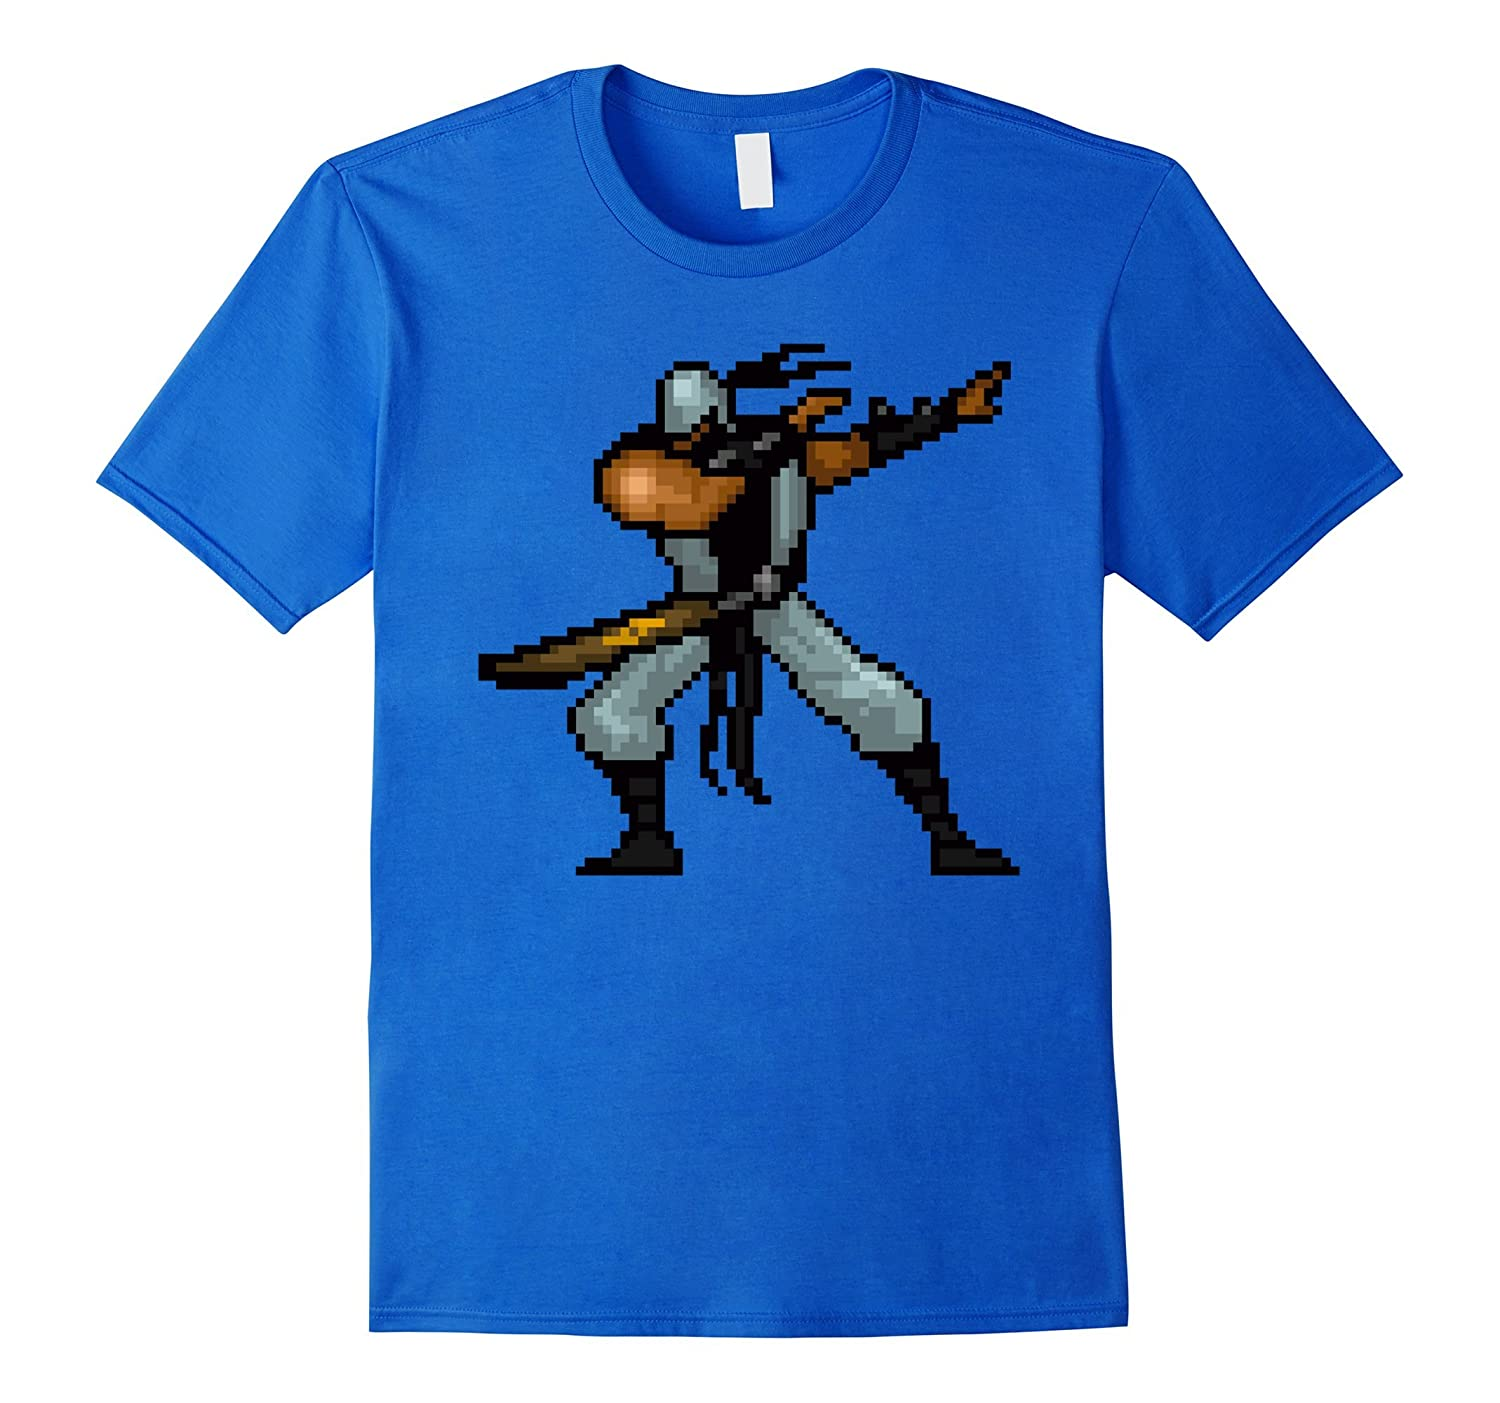 Amazon.com: Dabbin Ninjas (GREY) - Official Ninja Shodown T ...